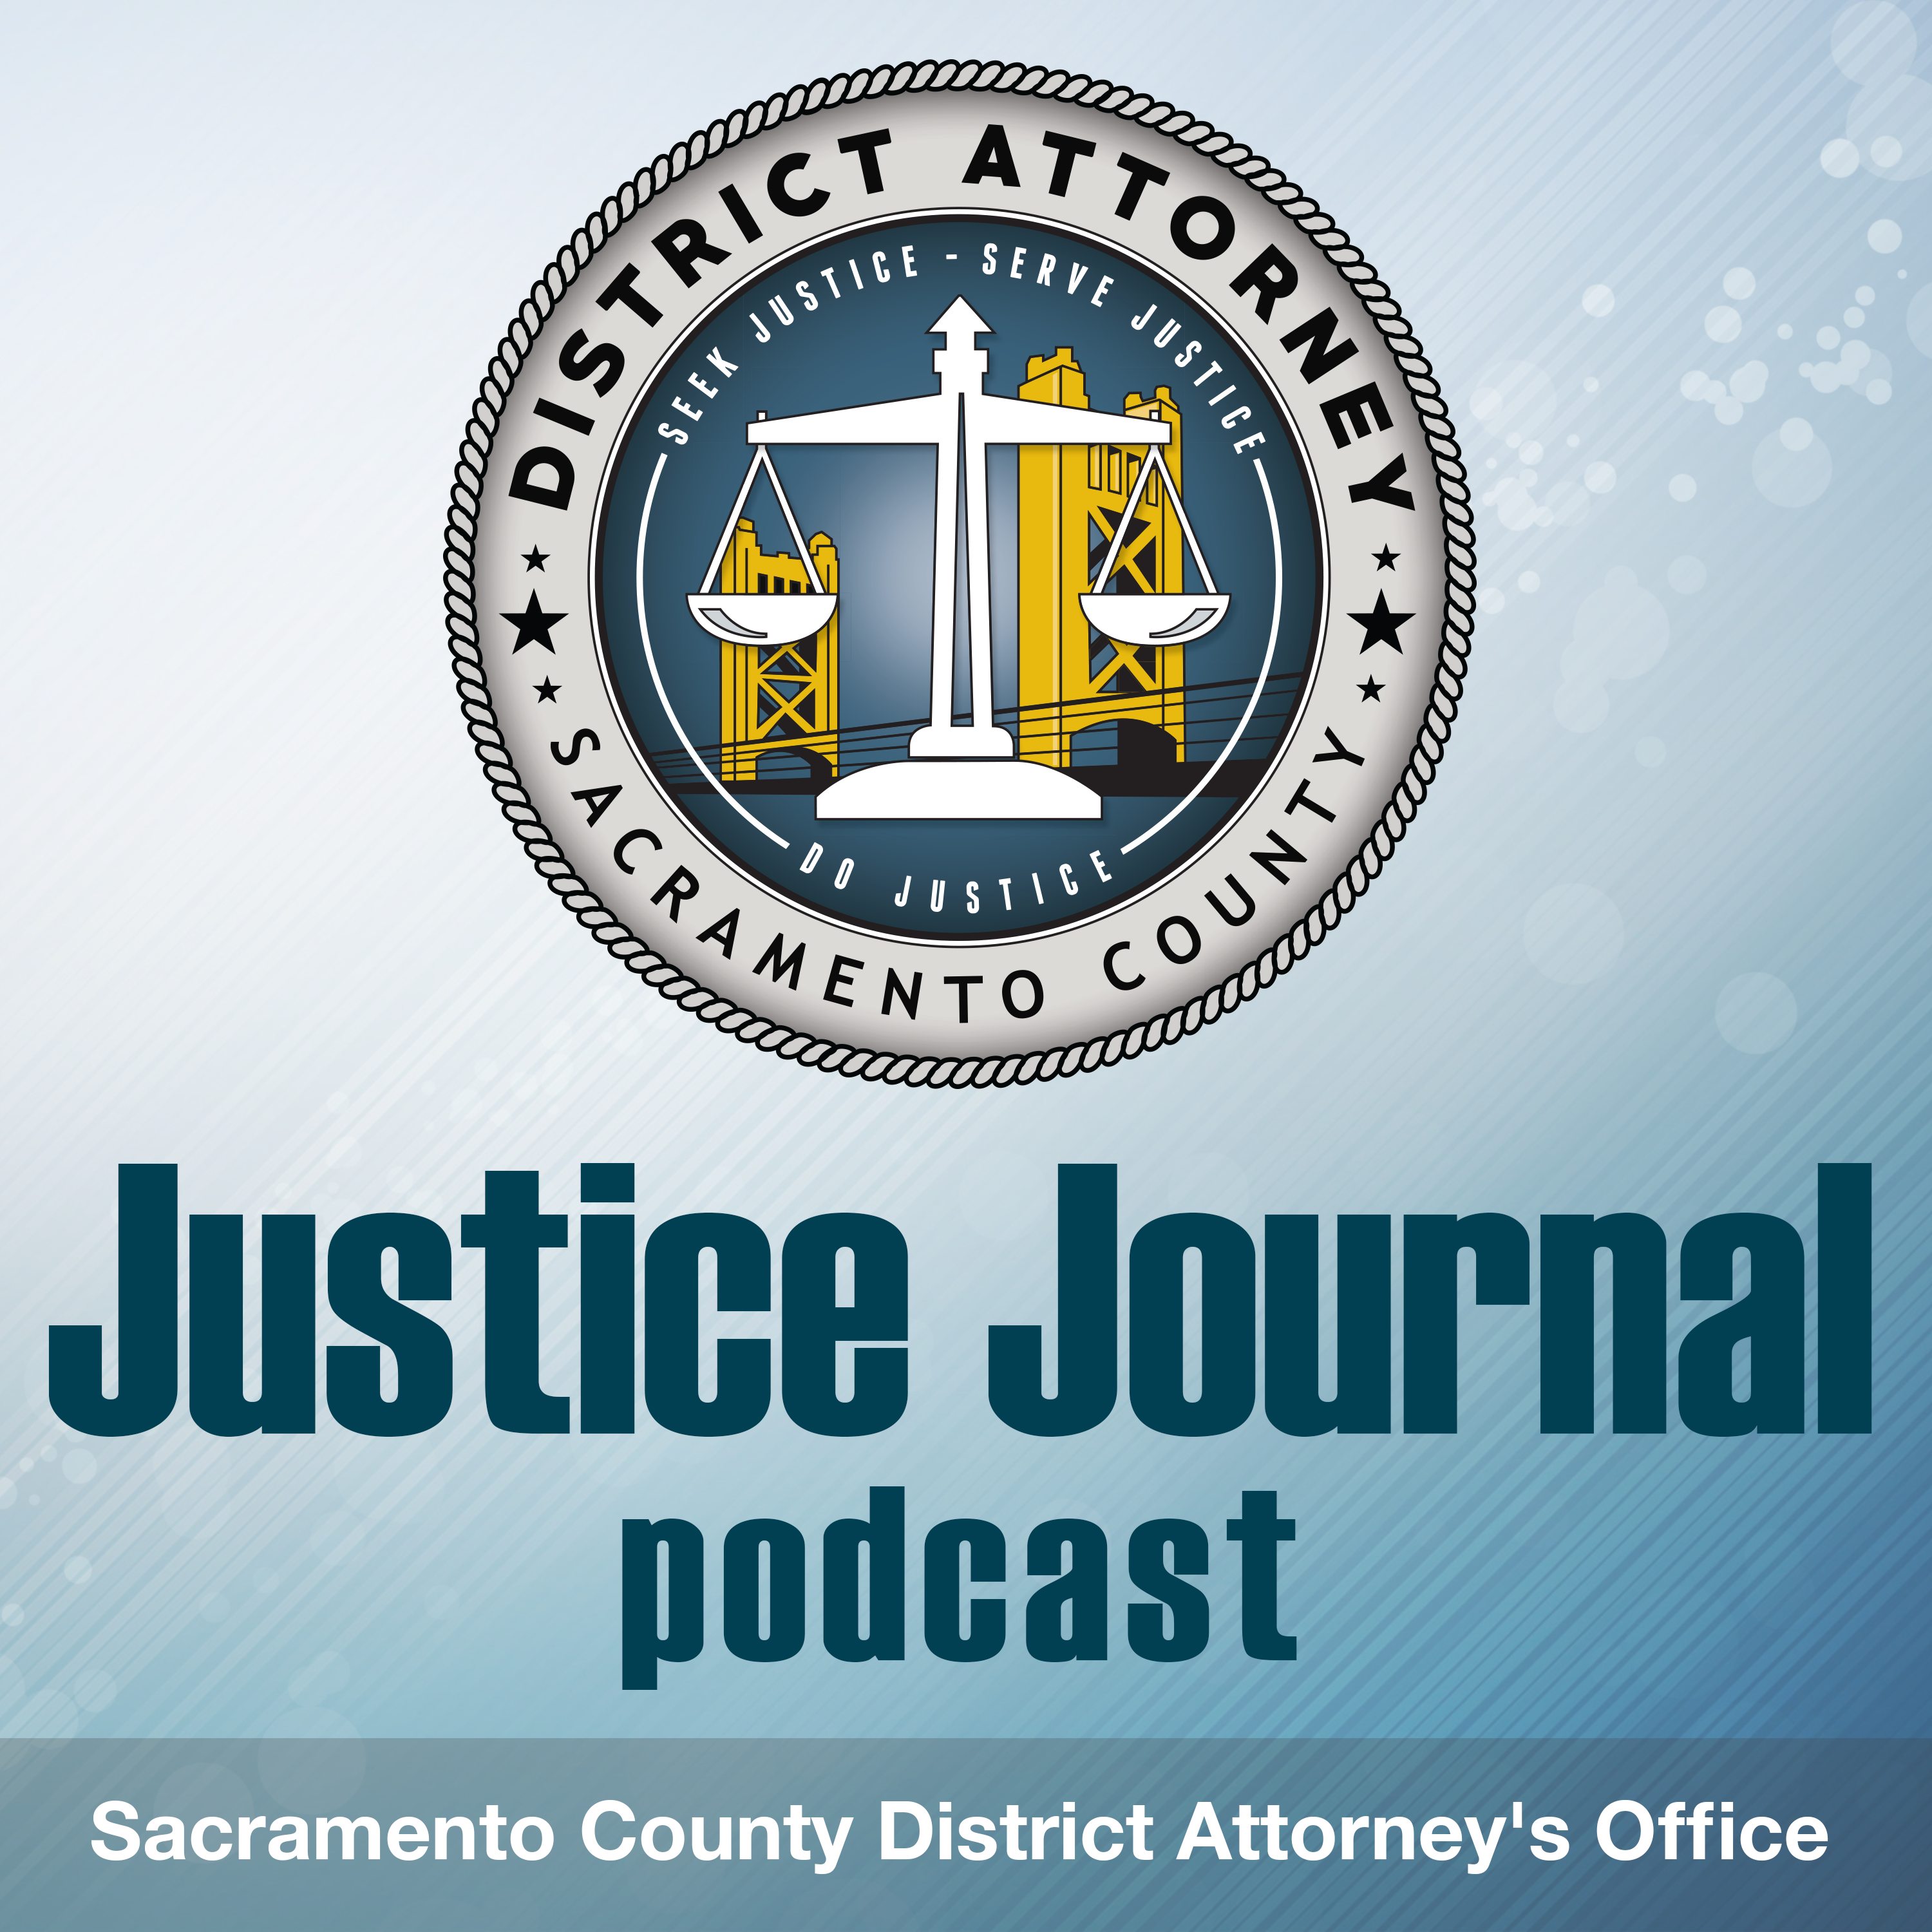 Hate Crimes Against The Asian American Pacific Islander Community - Justice Journal Episode 44